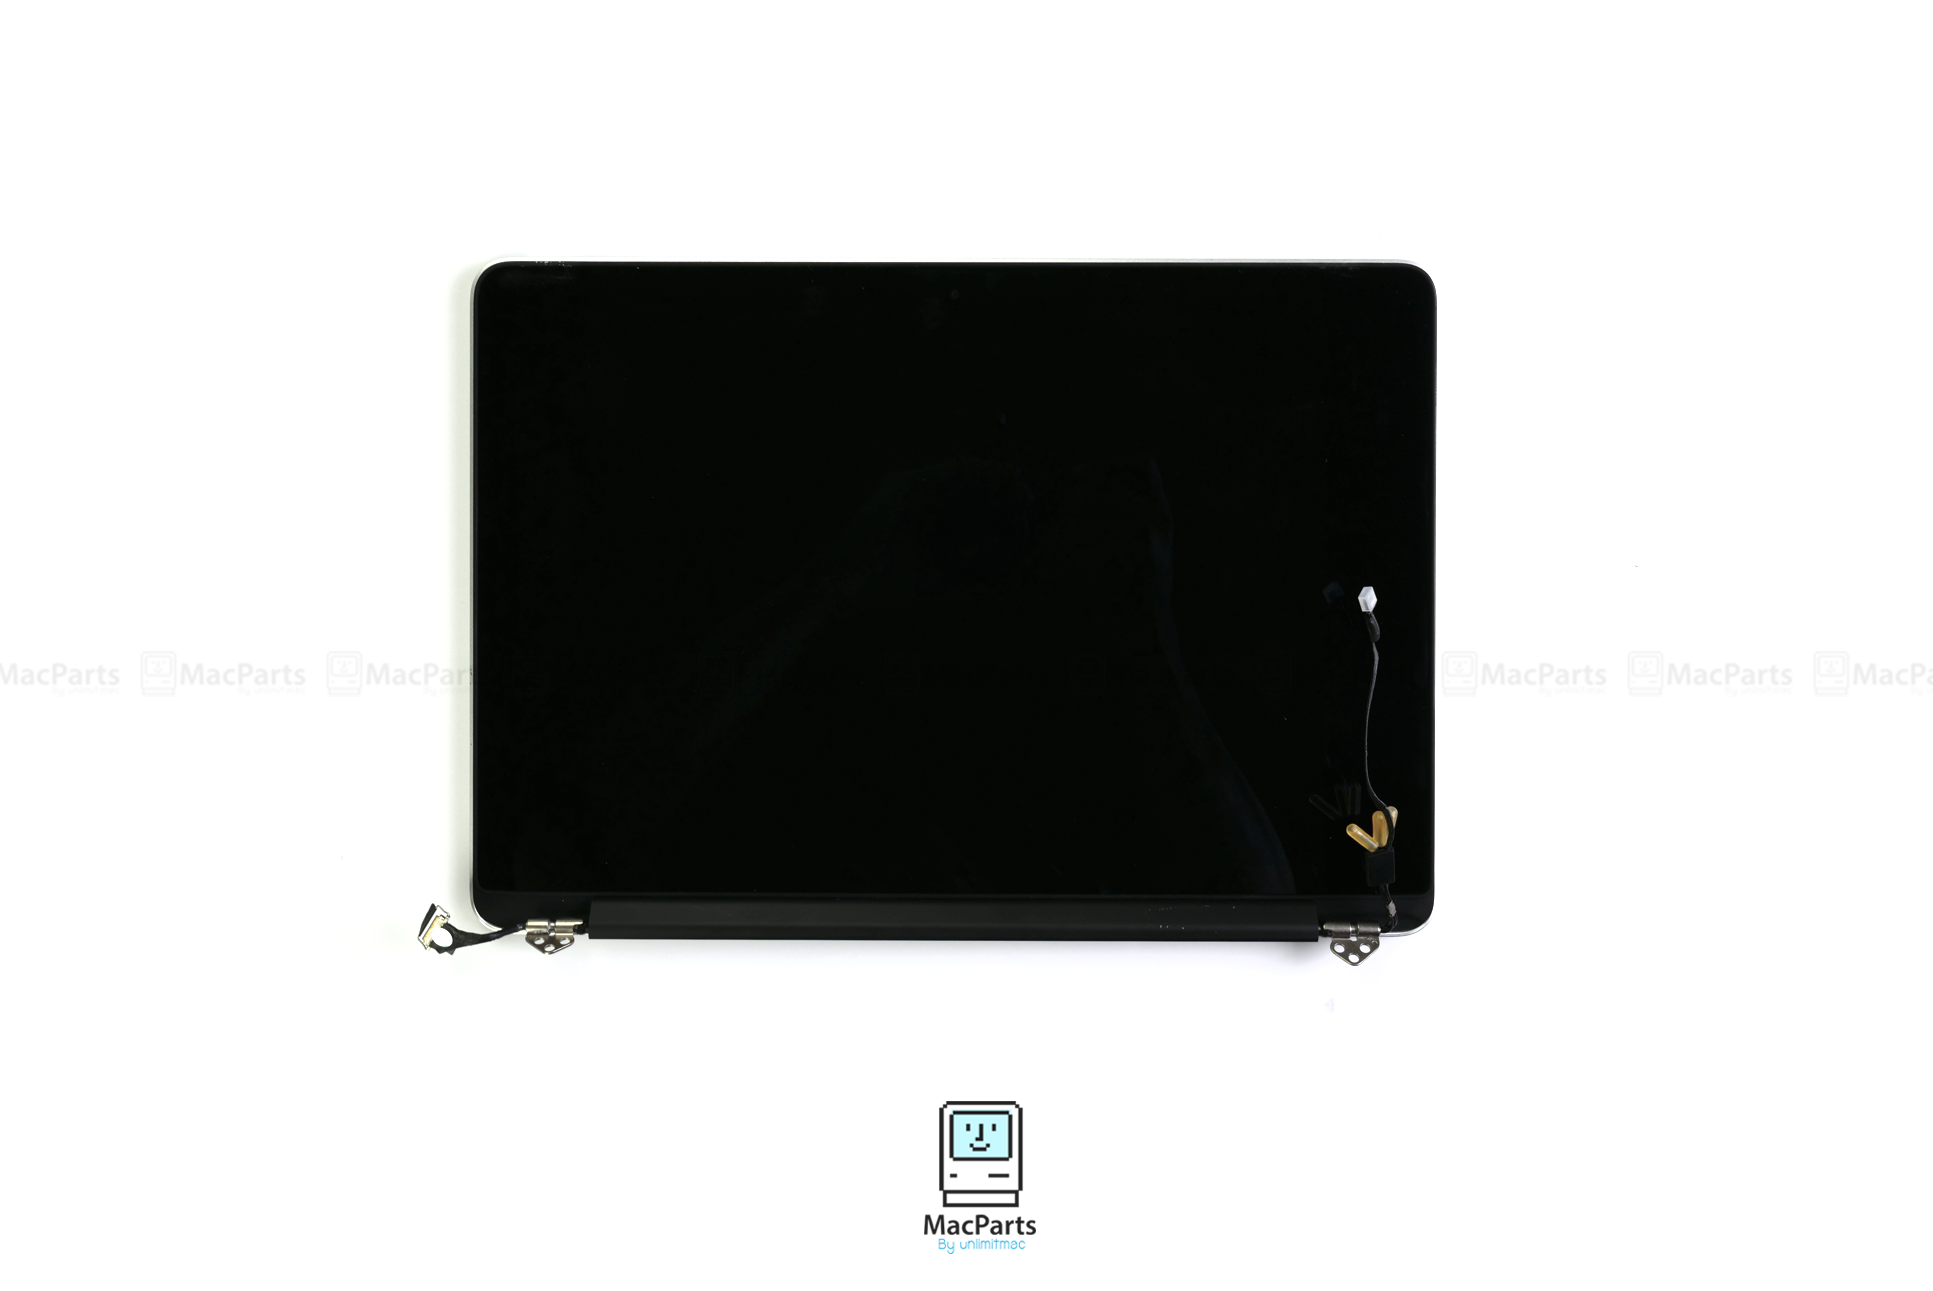 661-7014 95% Display Assembly, 13.3-inch MacBook Pro (Retina, 13-inch,Early 2013) MacBook Pro (Retina, 13-inch, Late 2012) 95%